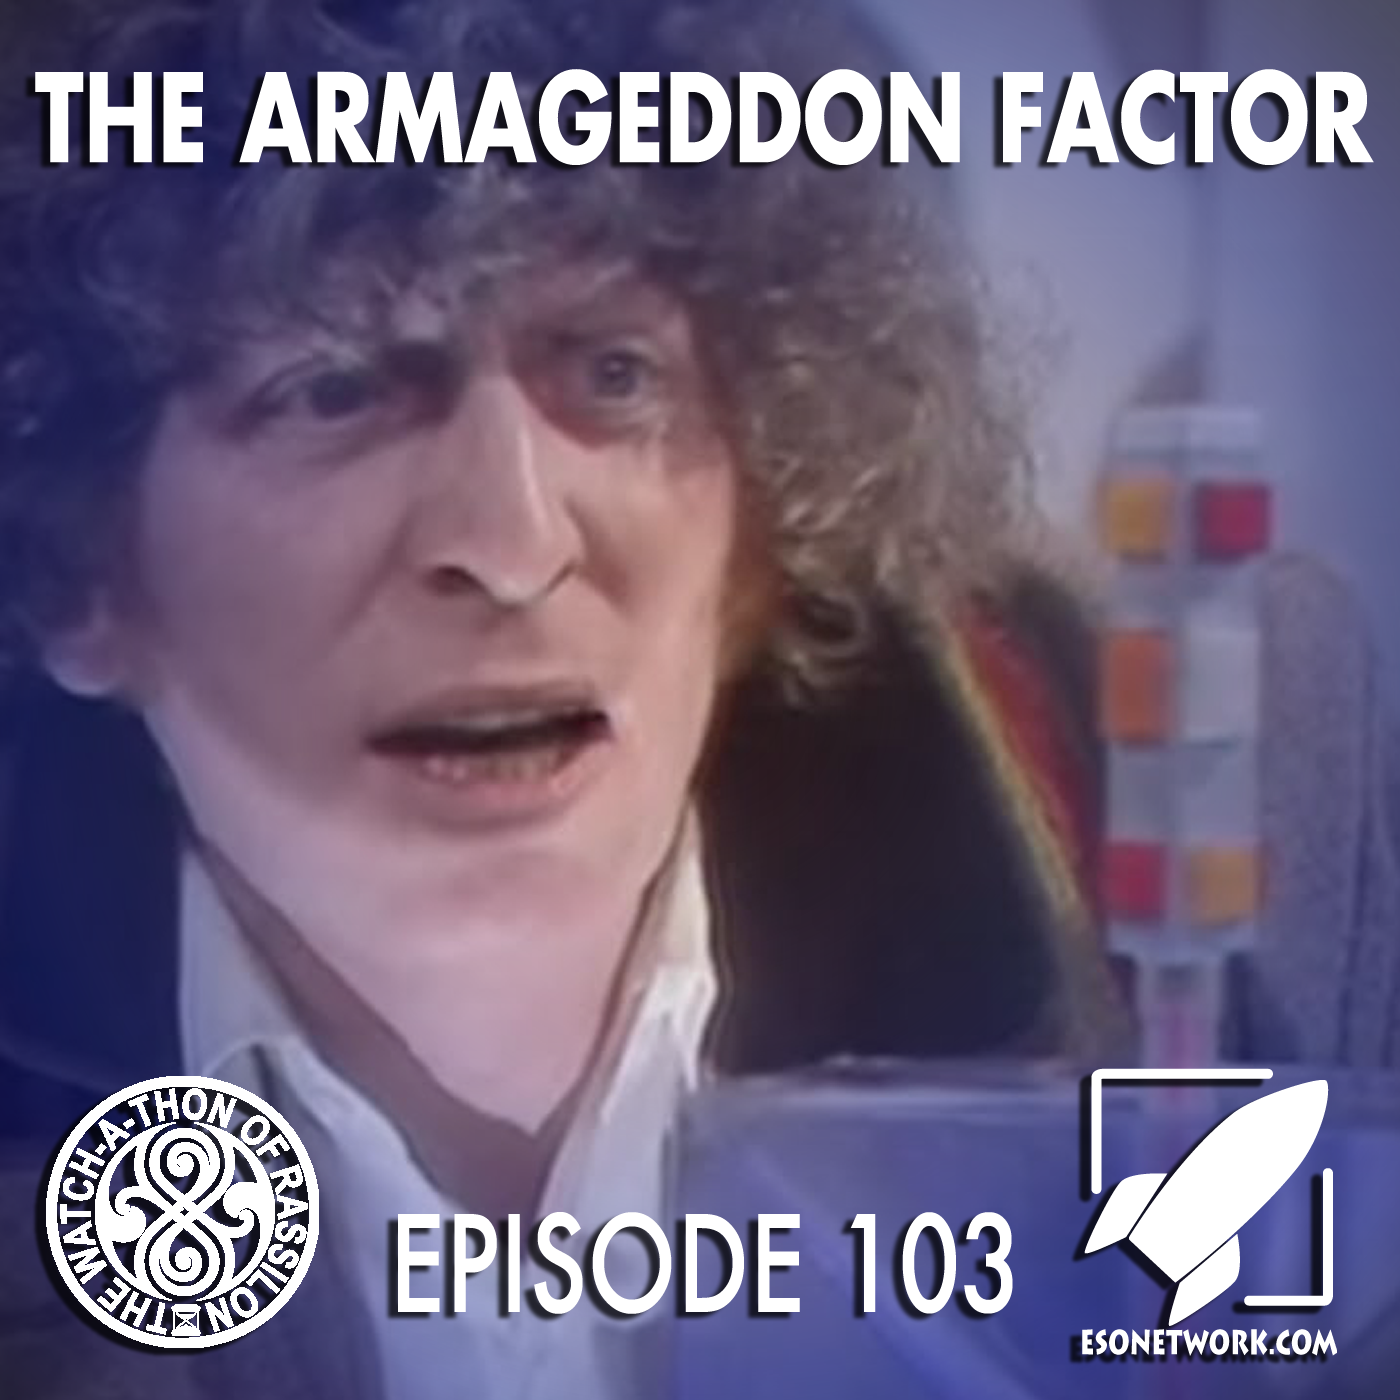 The Watch-A-Thon of Rassilon: Episode 103: The Armageddon Factor